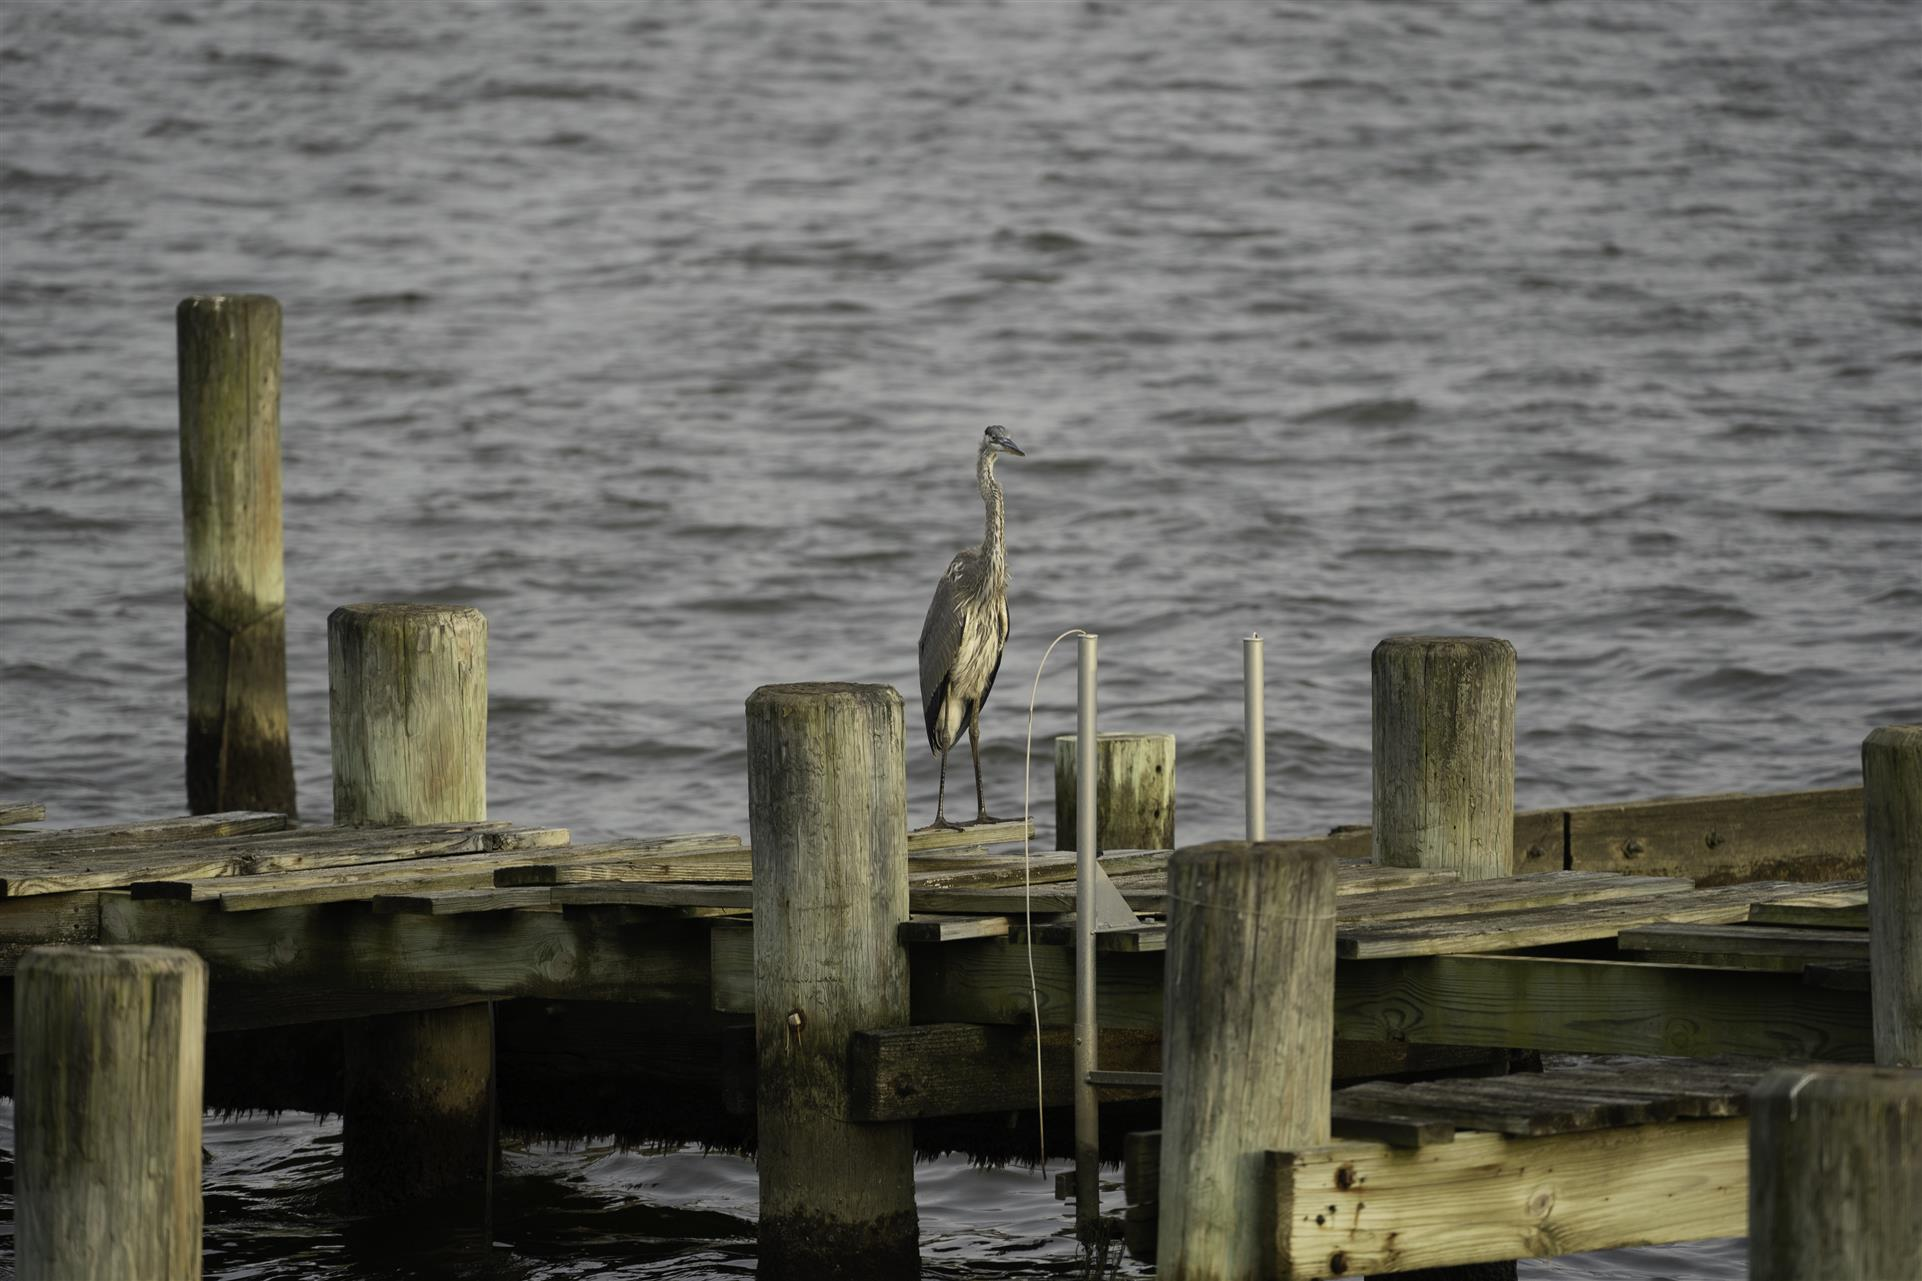 a dock over the water with a bird on it